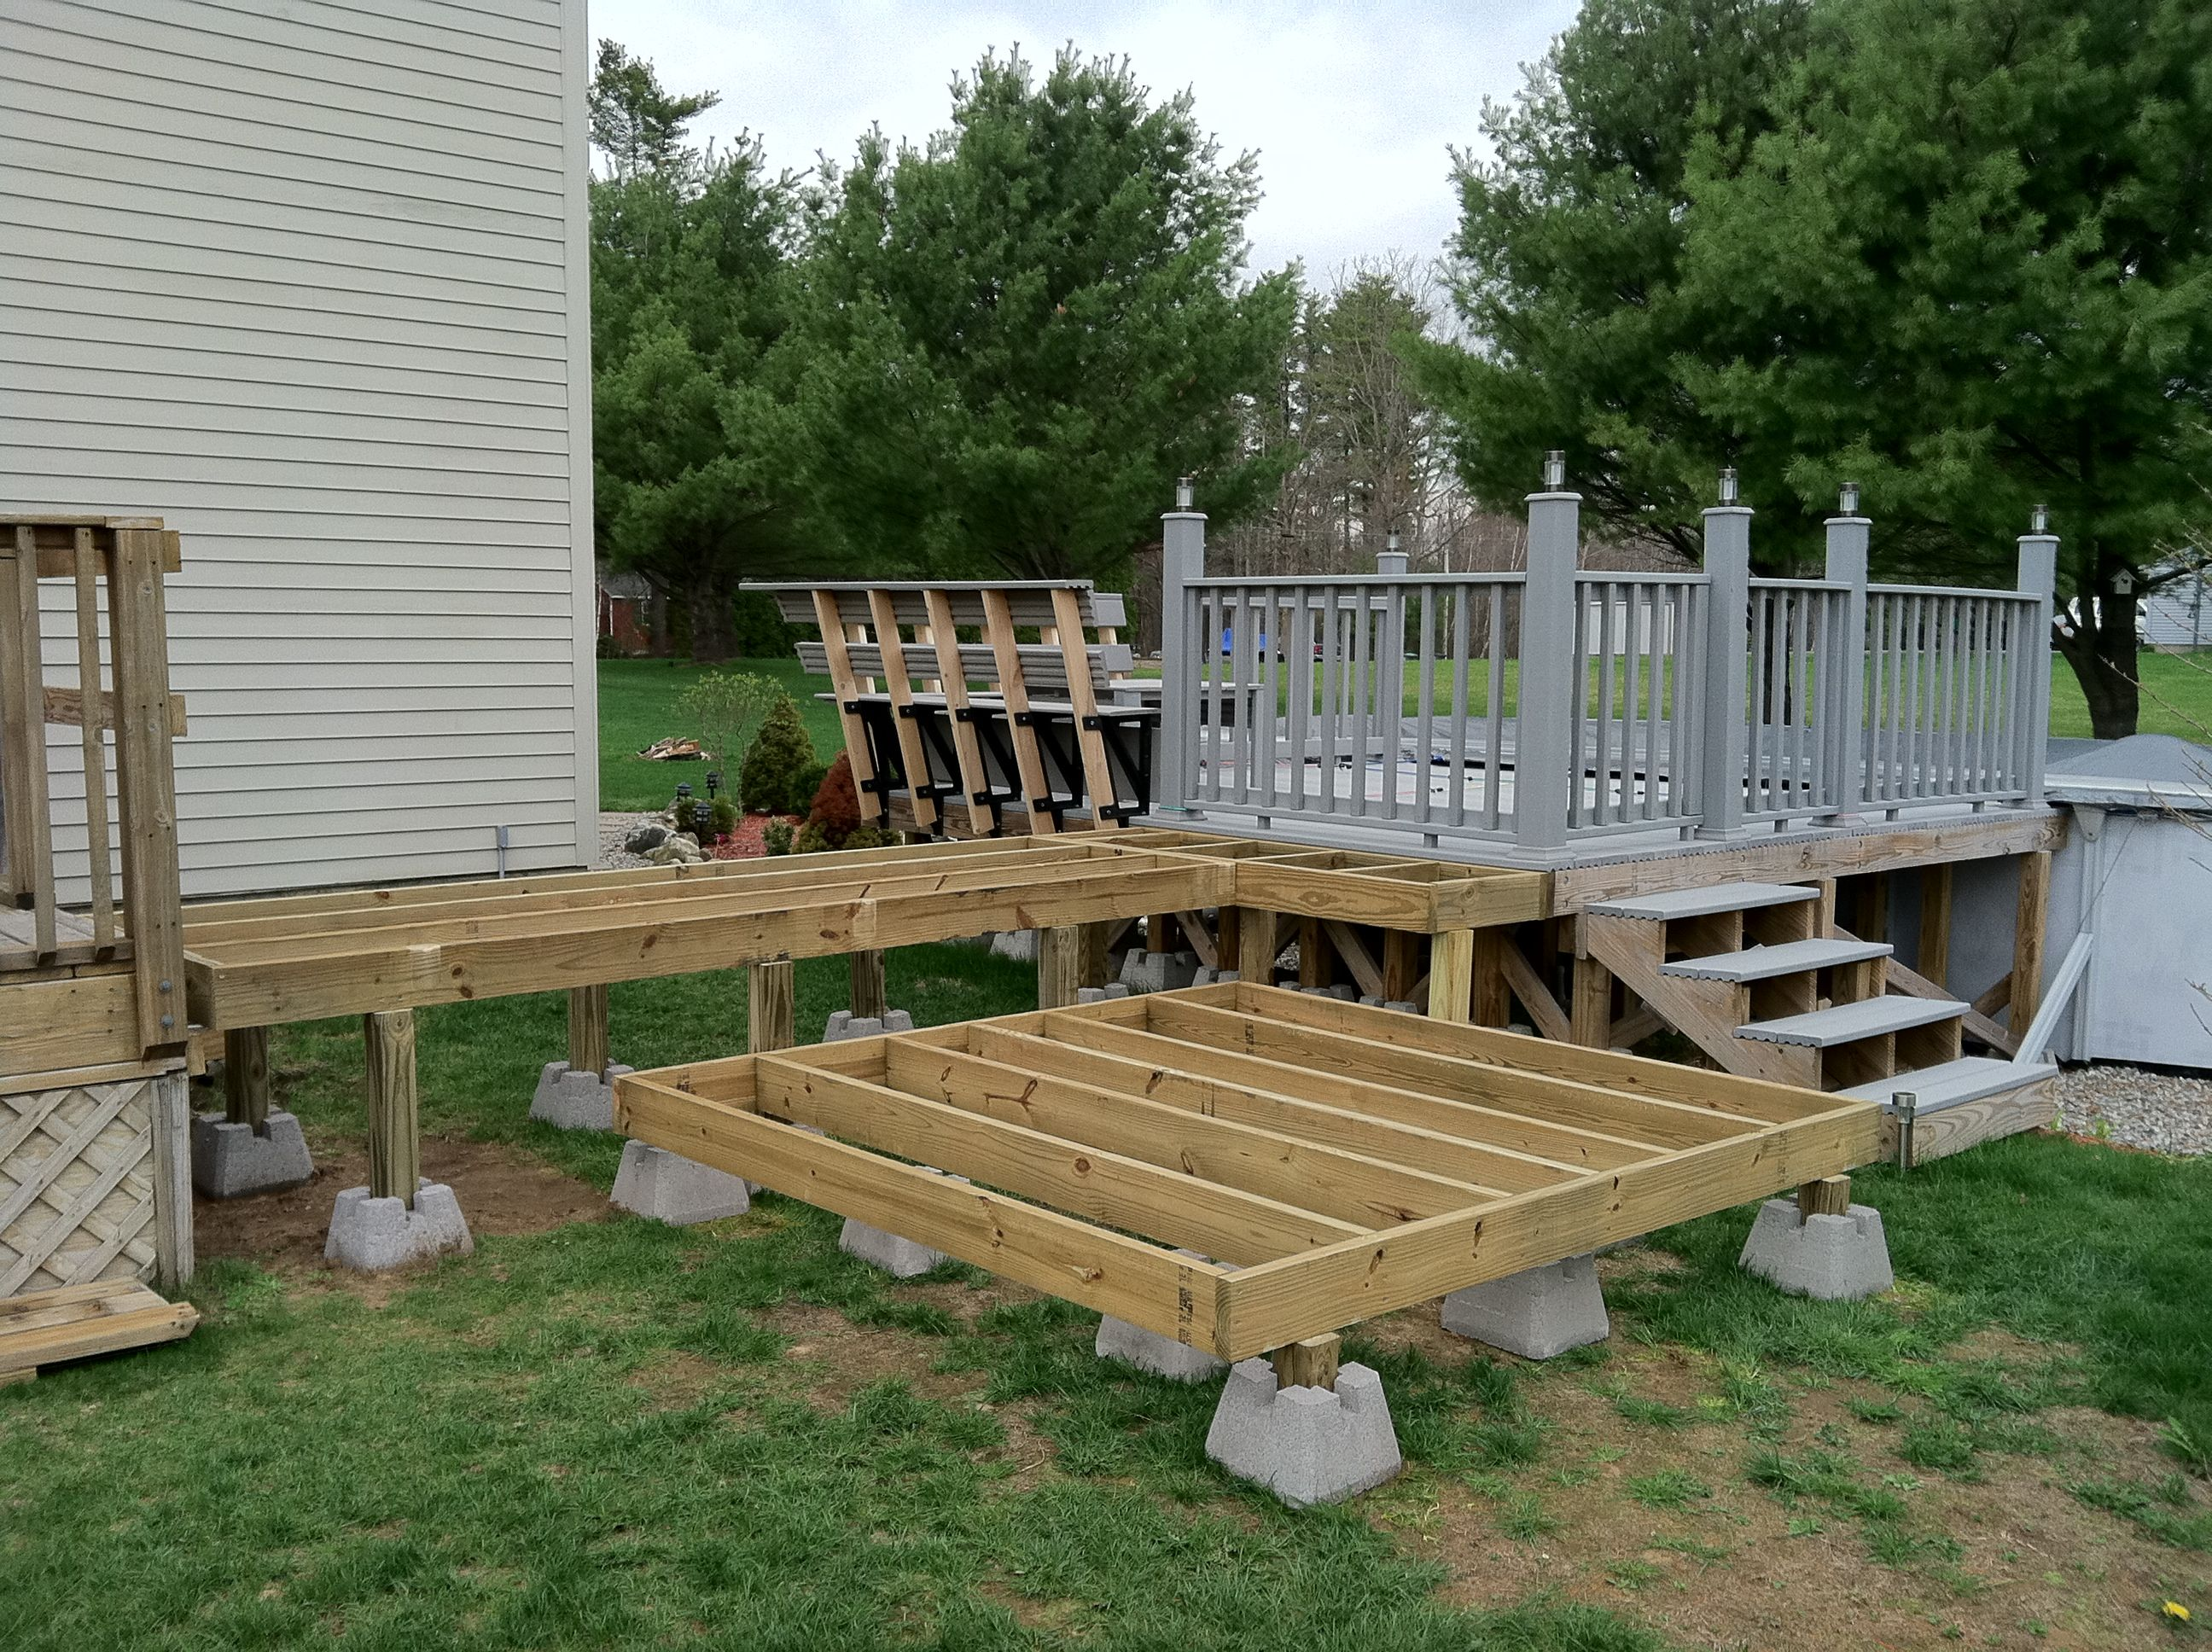 Framework for the hot tub and deck access